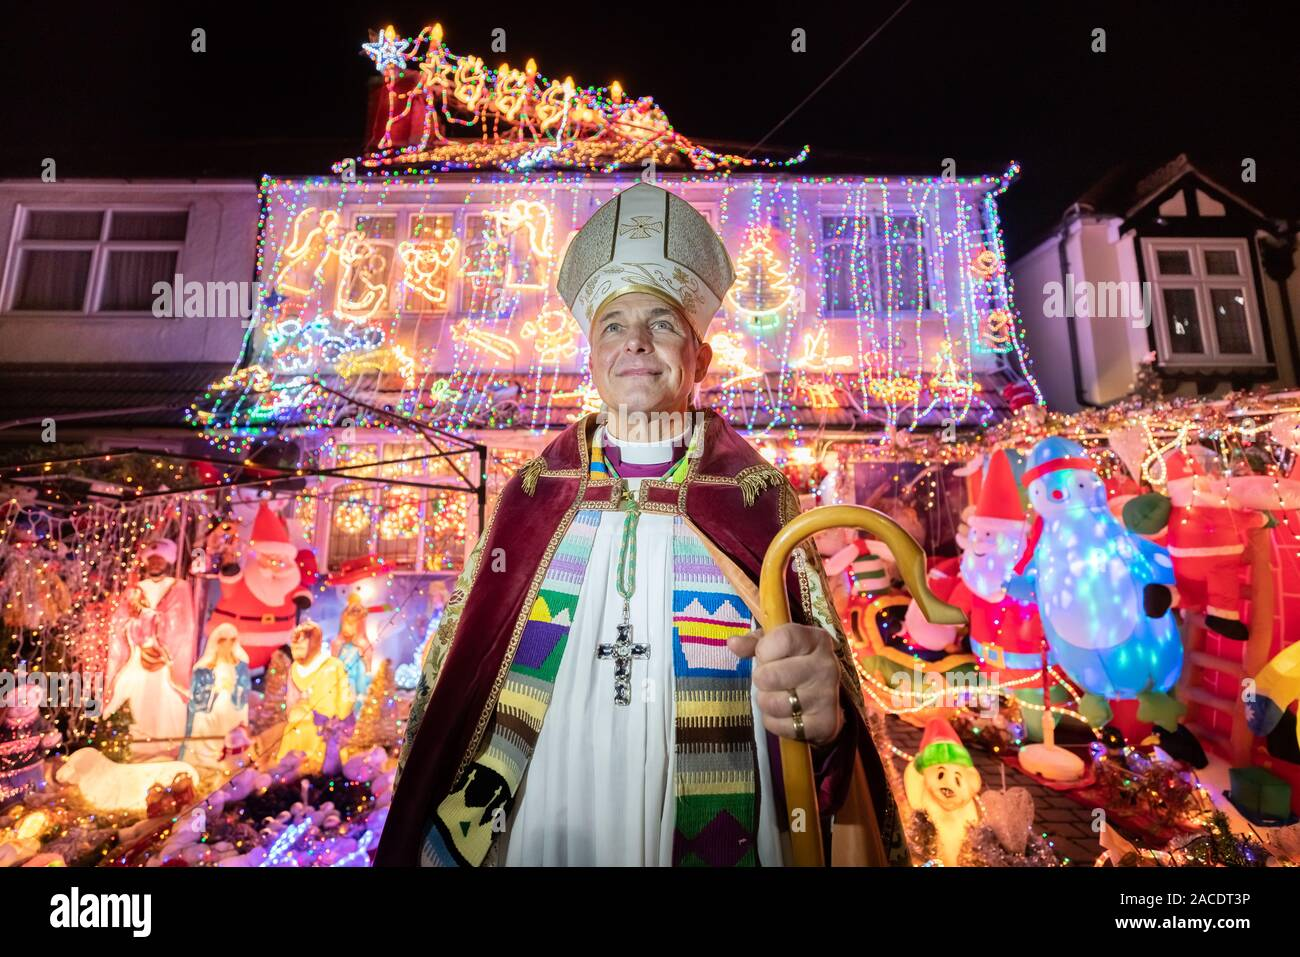 London, UK. 2nd Dec, 2019. Christmas house lights display in Welling. Bishop Jonathan Blake (pictured) and his family have decorated their home every year since 2002. For some of the local children, 'the Christmas House' as they call it, is a vital part of their Christmas experience. Bishop Blake will use this year's light display to help raise funds to provide clean water to Tiaba Nyass, a small village in the Gambia. Credit: Guy Corbishley/Alamy Live News Stock Photo